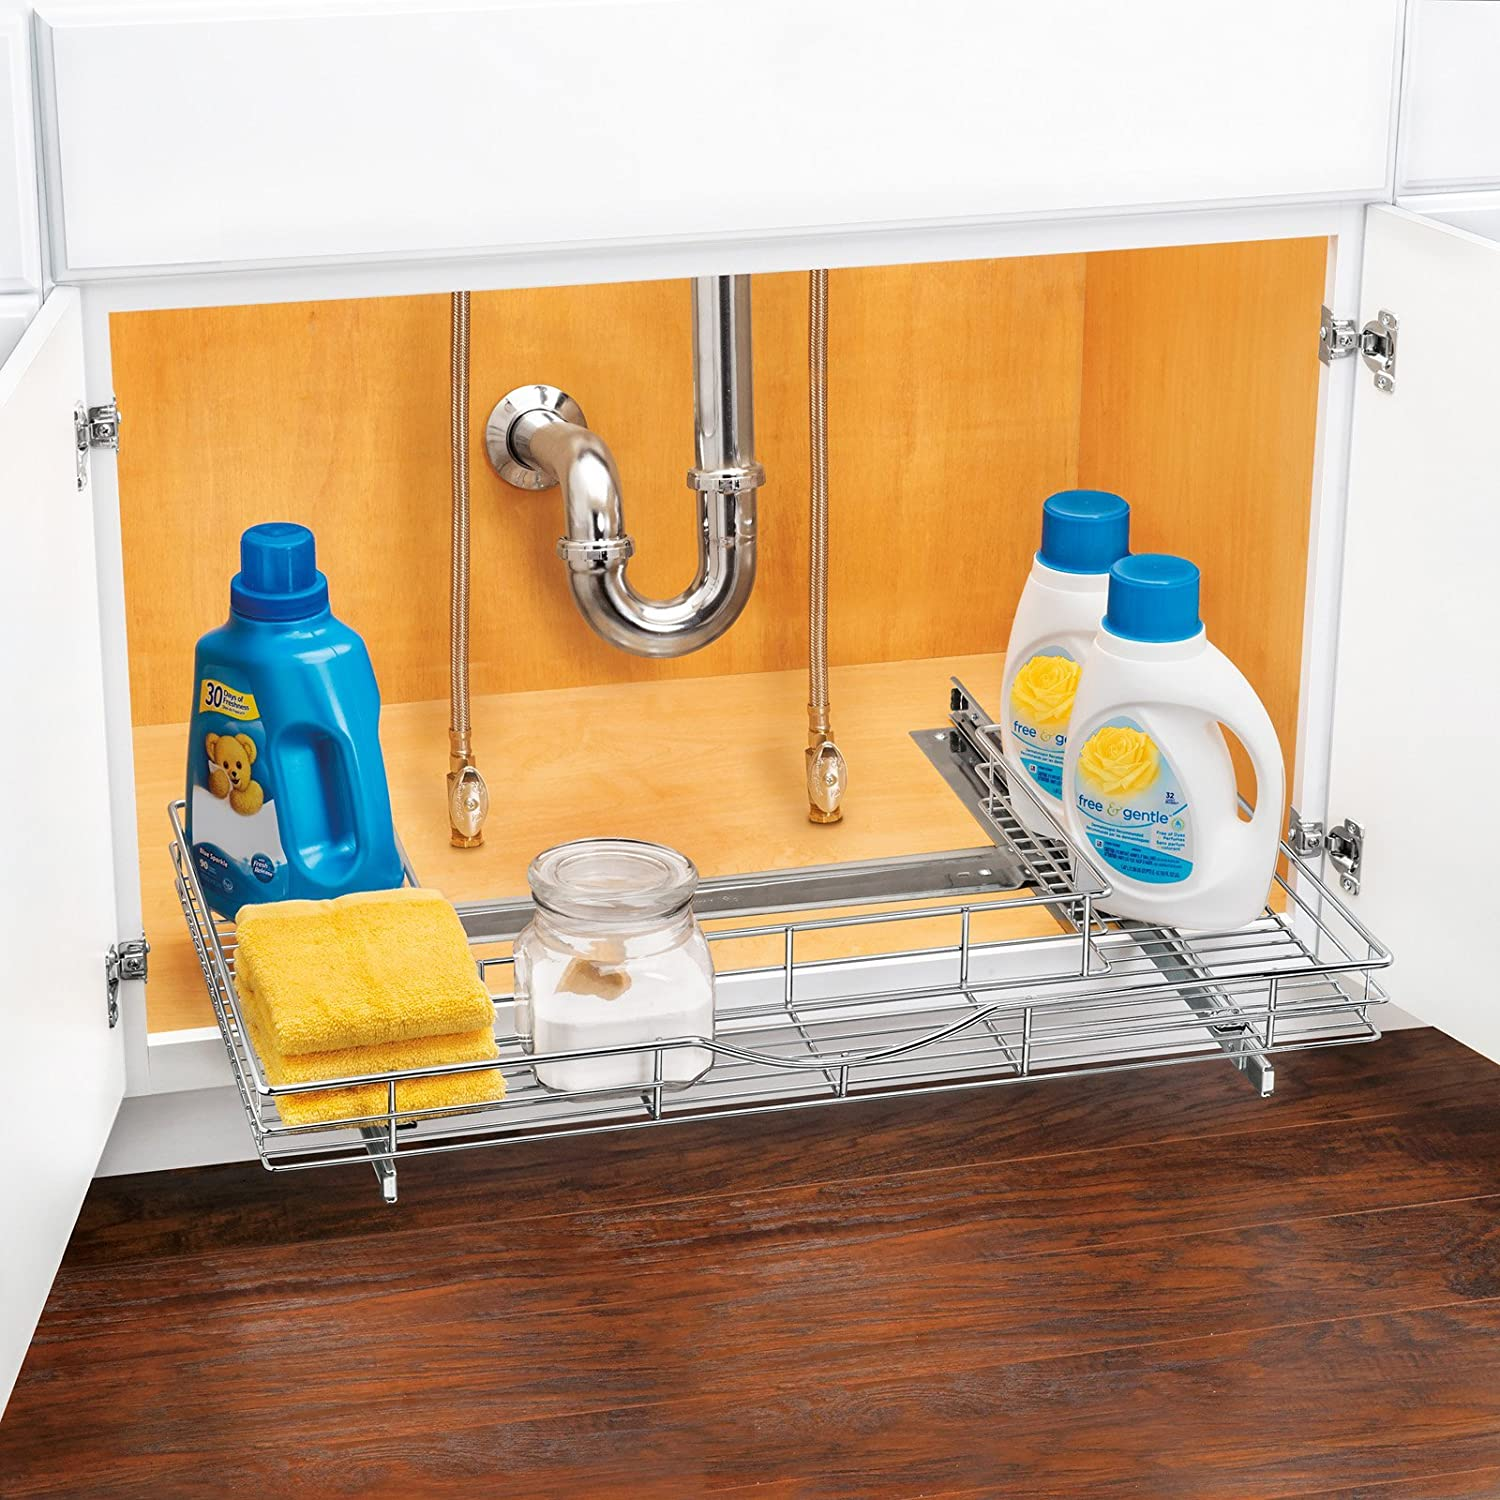 Lynk roll out under sink cabinet organizer pull out two tier sliding - Amazon Com Lynk Professional U Shaped Roll Out Under Sink Drawer Pull Out Under Cabinet Organizer Shelf Chrome Home Kitchen